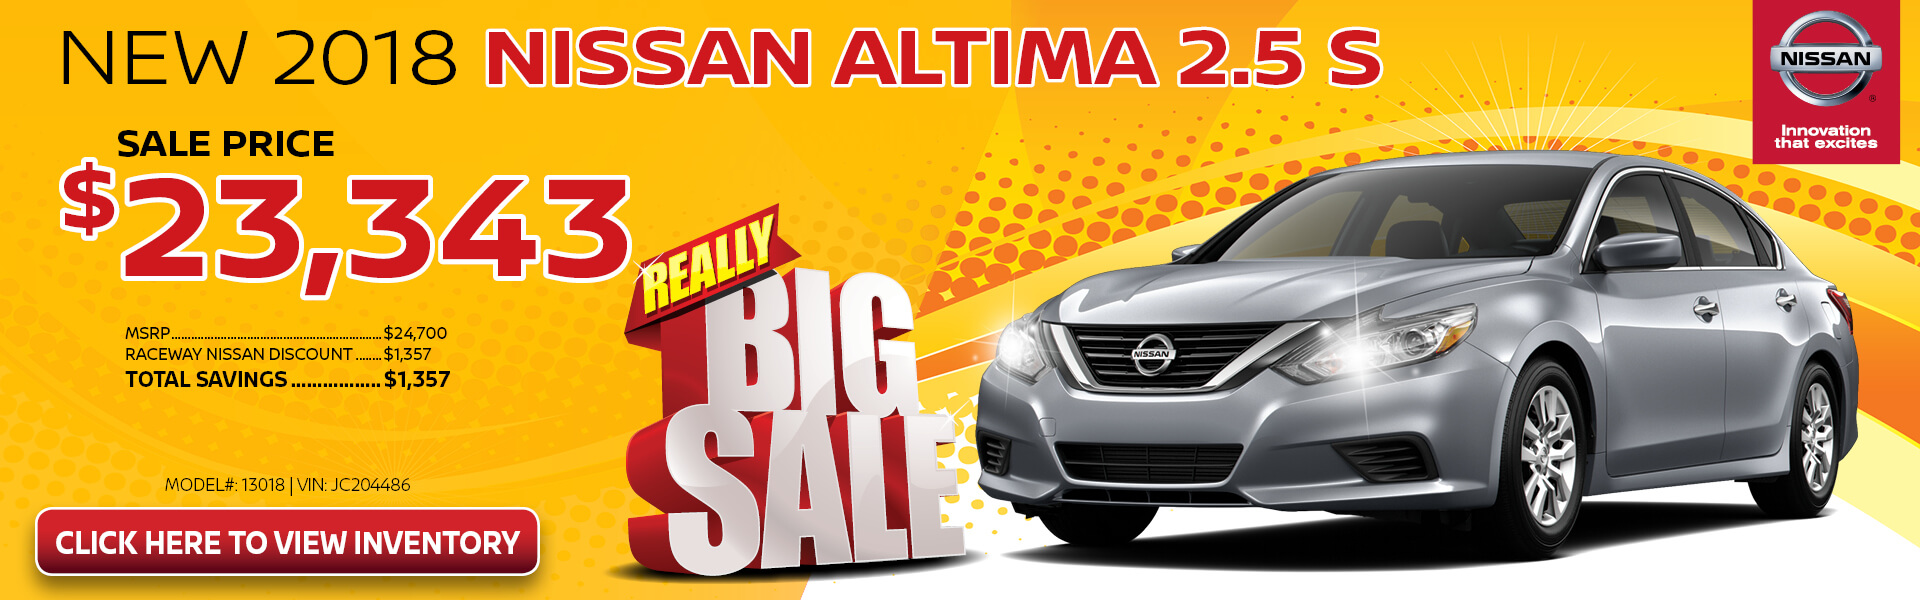 Nissan Altima $23,343 Purchase